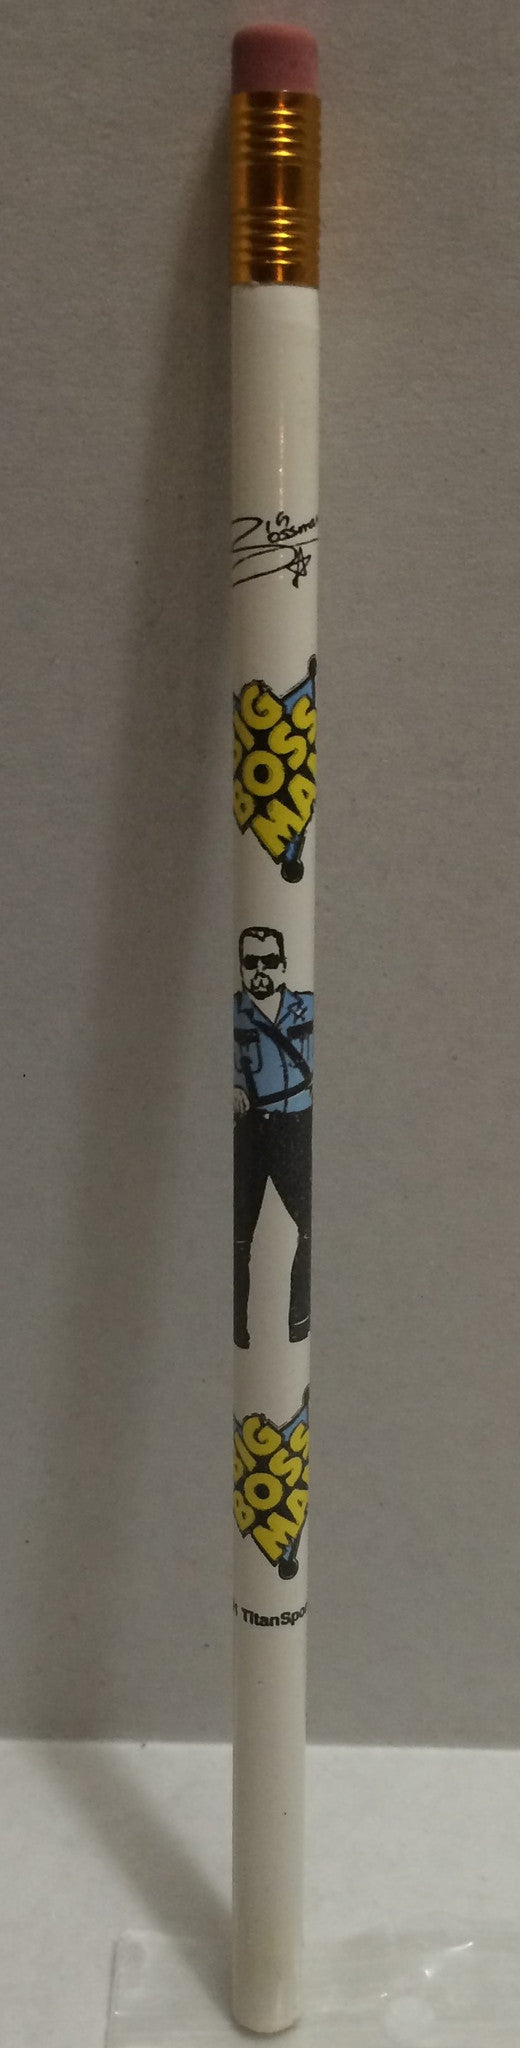 (TAS008166) - 1991 Titan Sports WWF Superstars Wrestling Pencil - Big Boss Man, , Pencils, Wrestling, The Angry Spider Vintage Toys & Collectibles Store